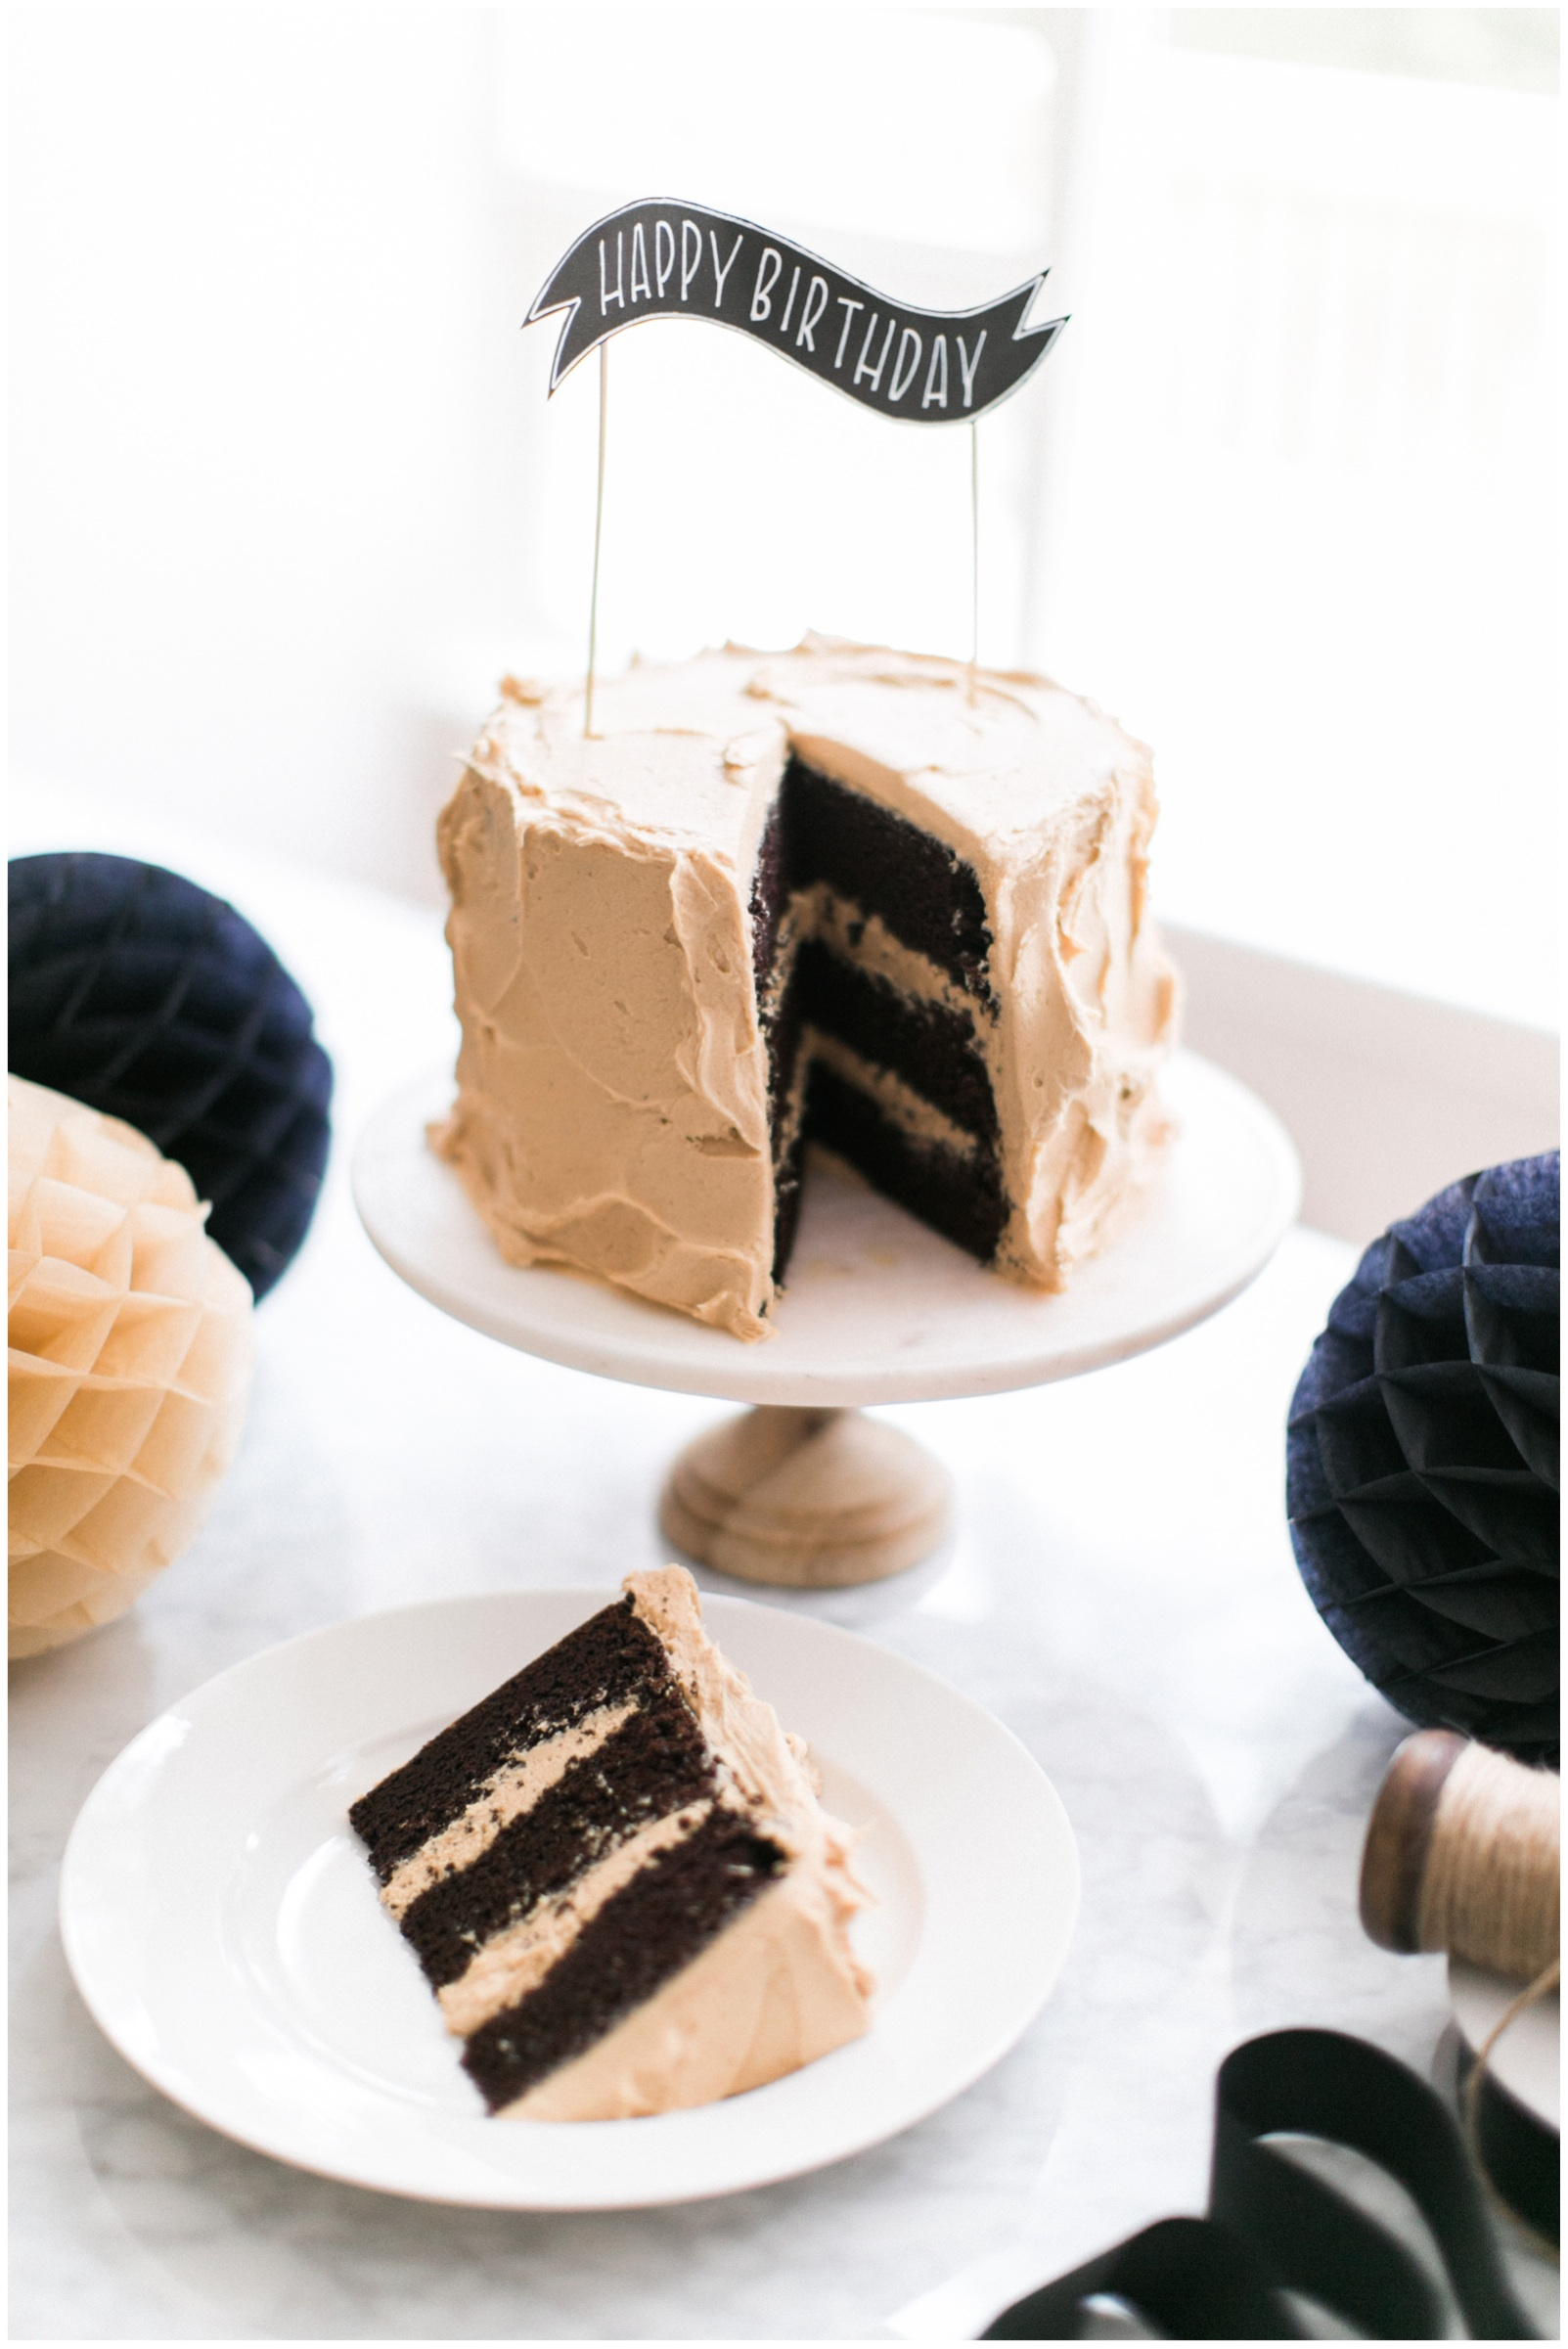 sinclair-and-moore-chocolate-peanutbutter-cake-1